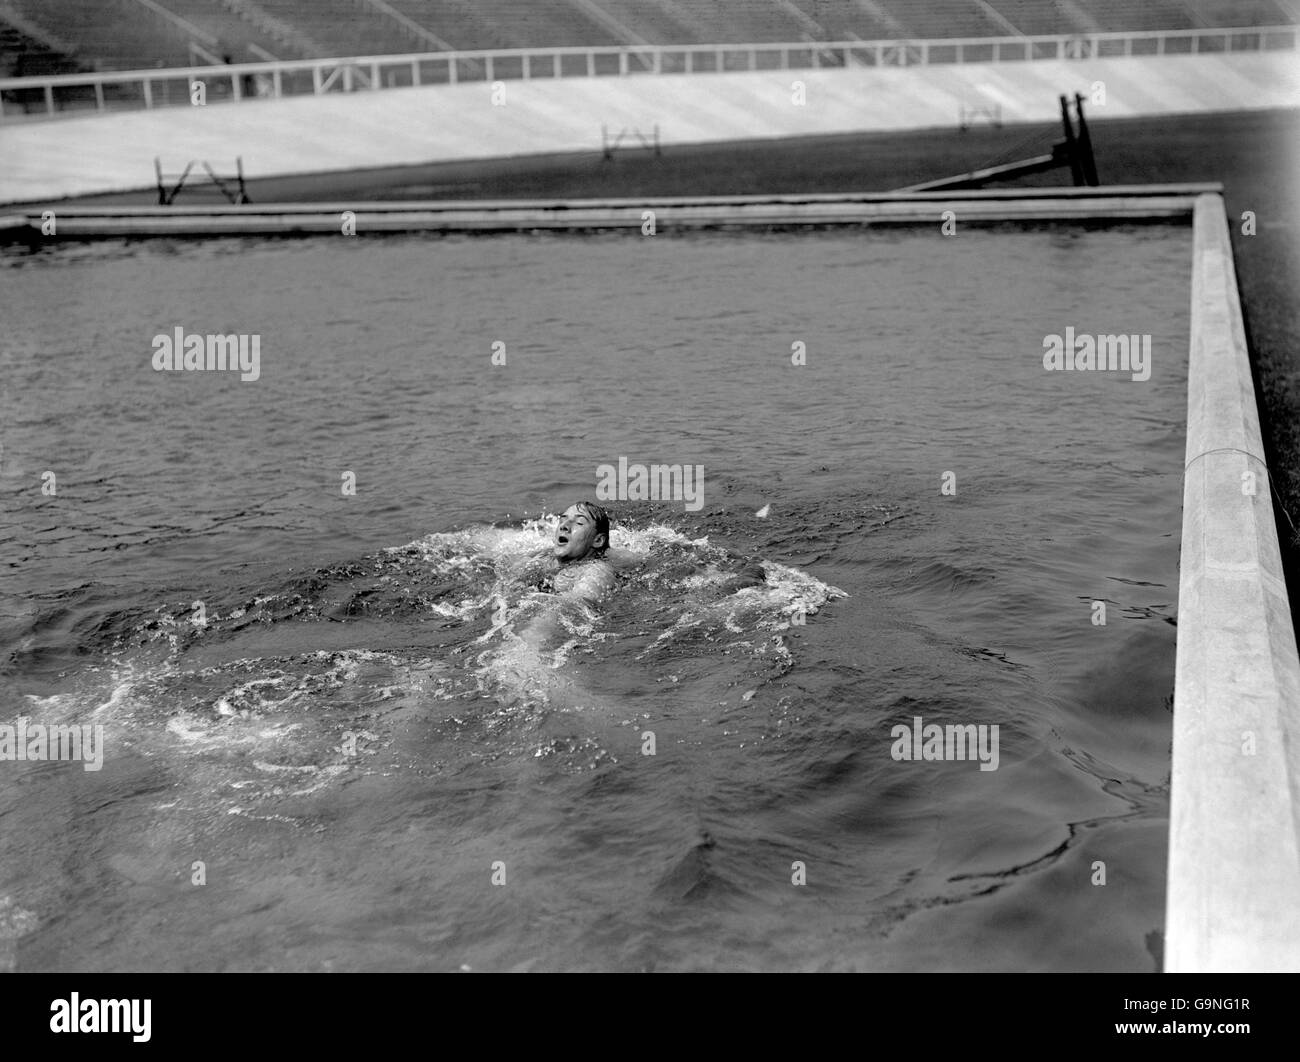 Swimming - London Olympic Games 1908 - White City Stock Photo